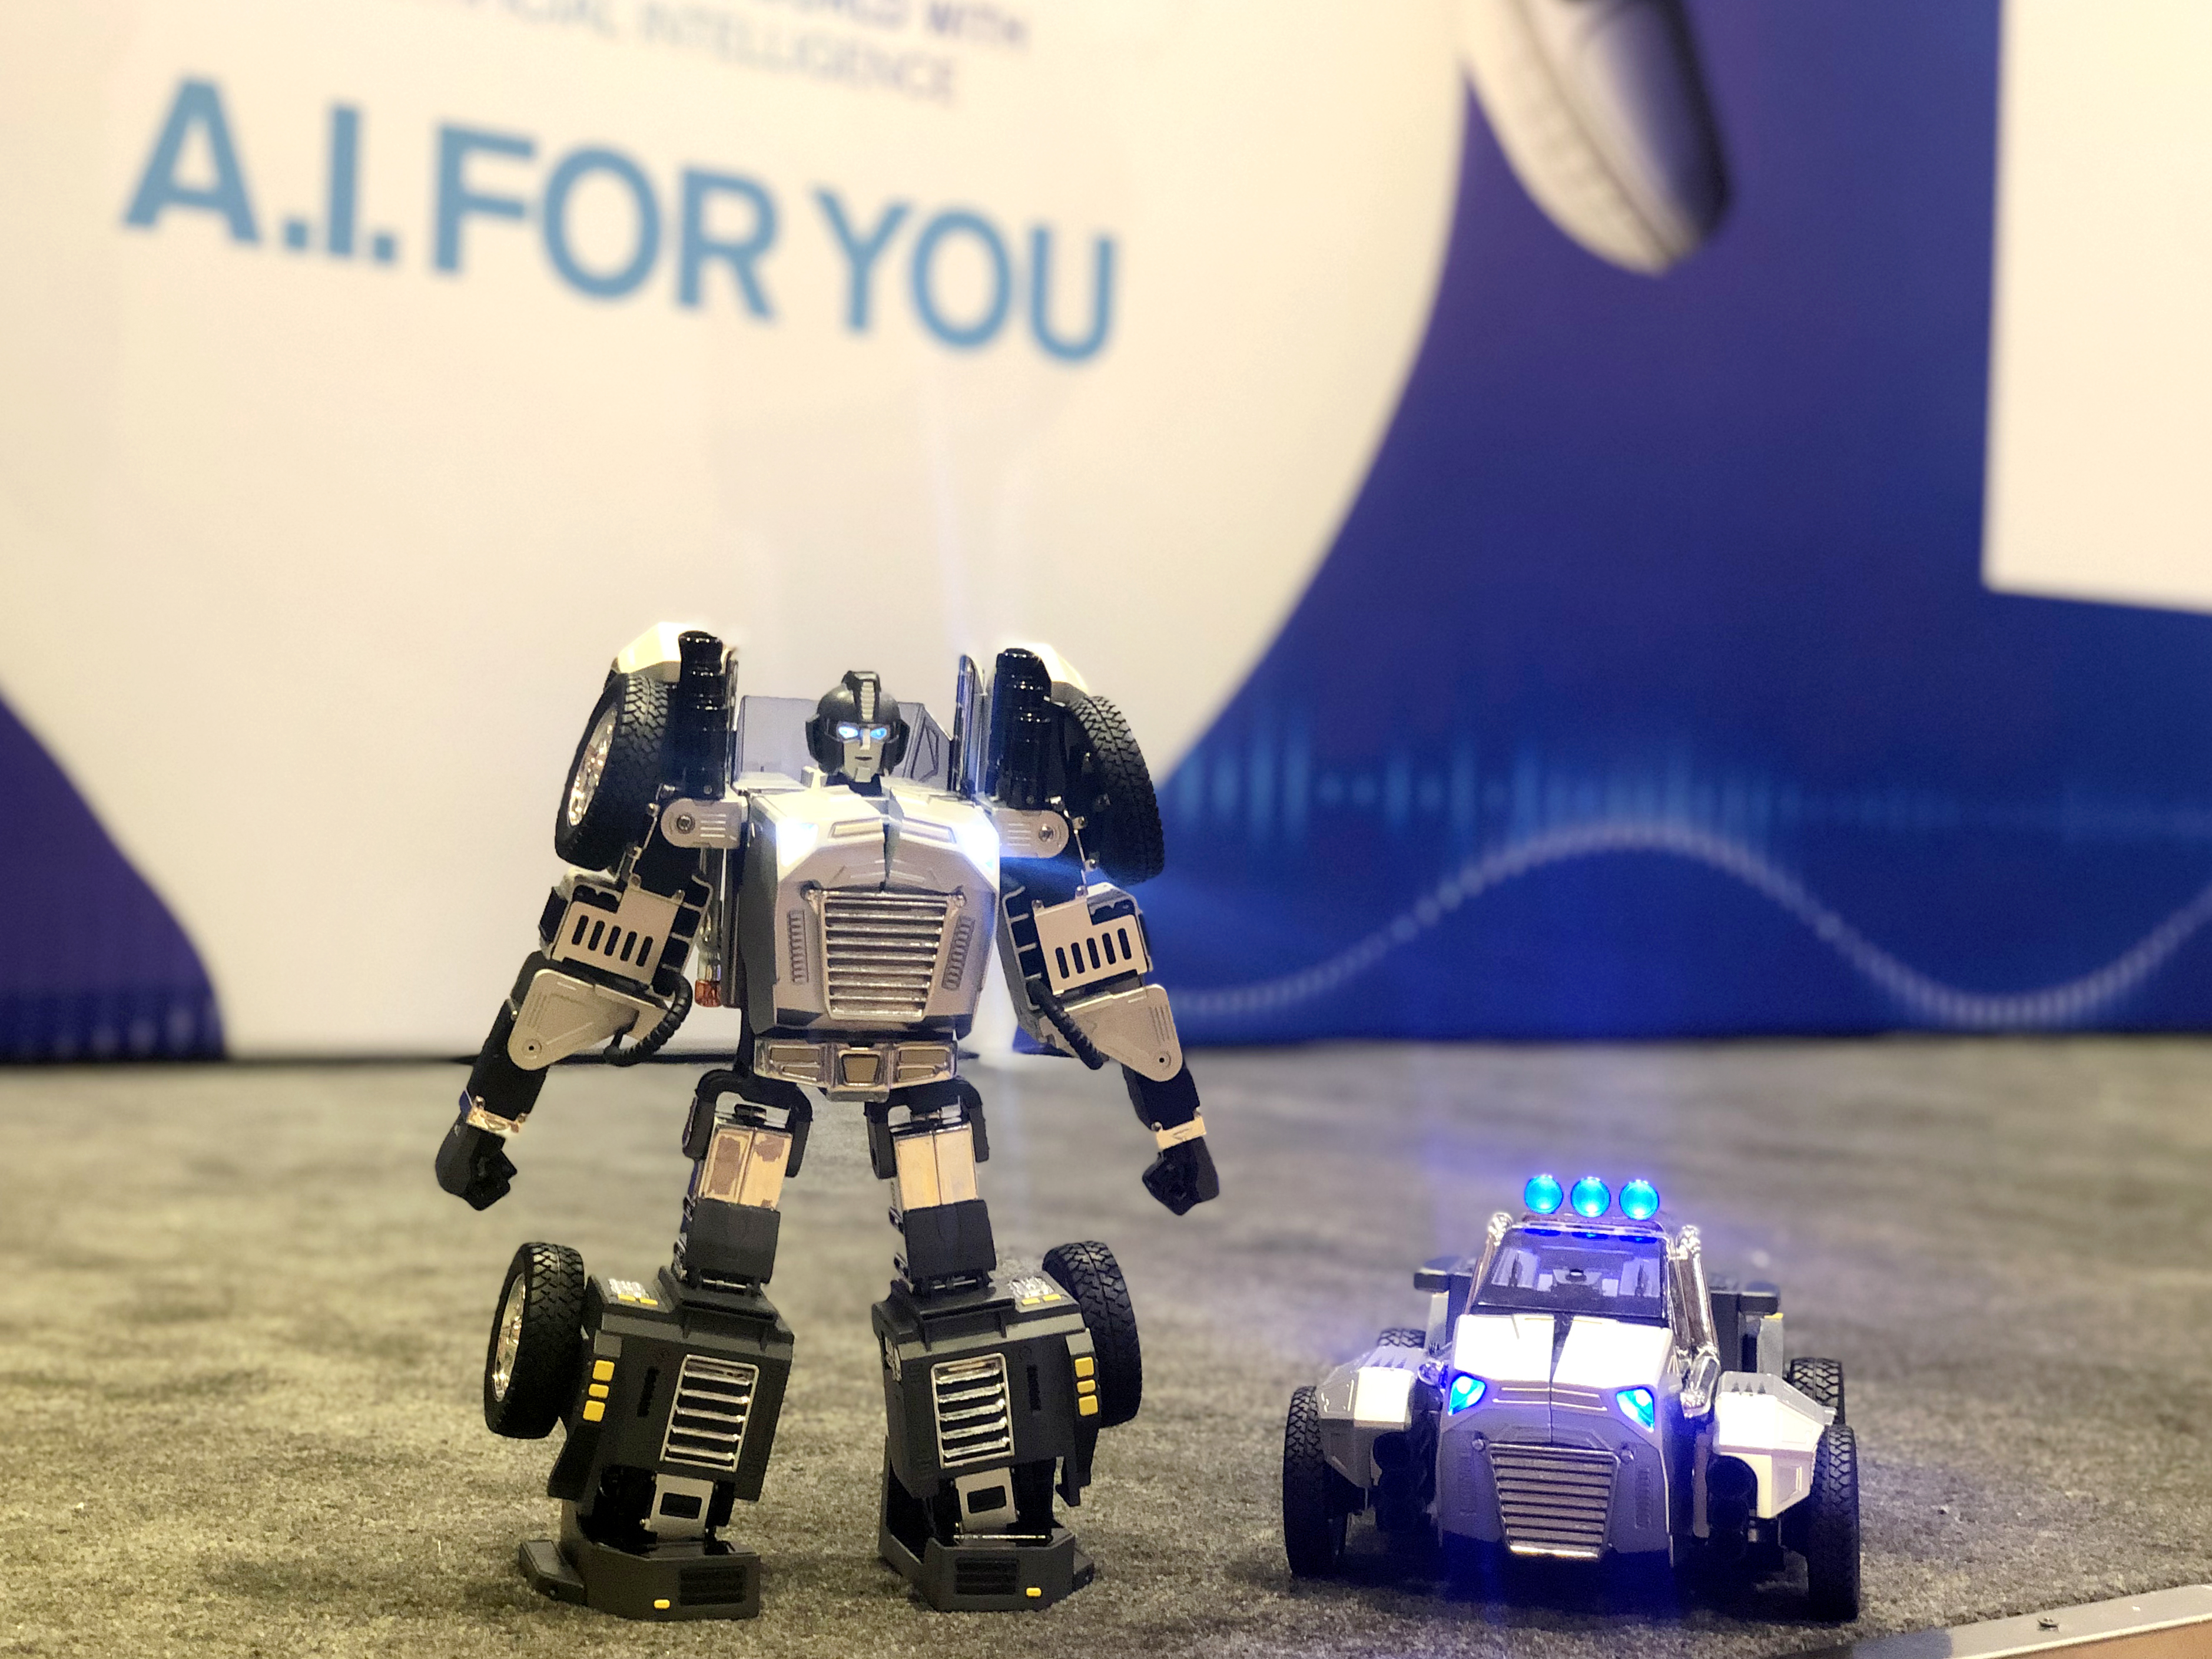 Voice-controlled robot can morph into a car that races around the room